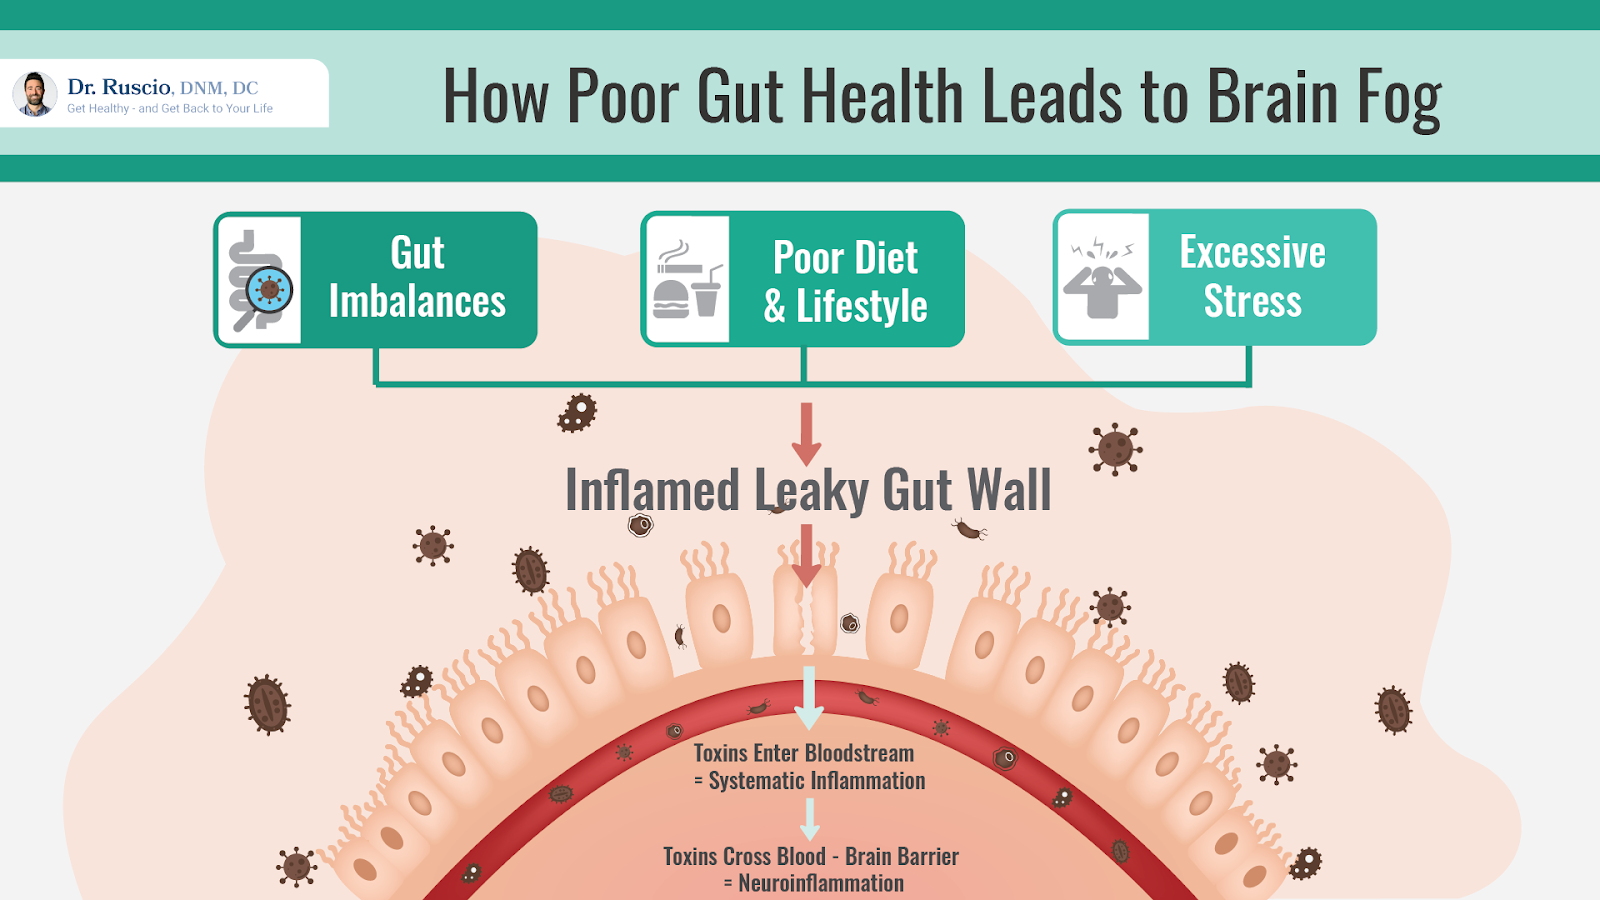 Diagram showing how poor gut health leads to brain fog